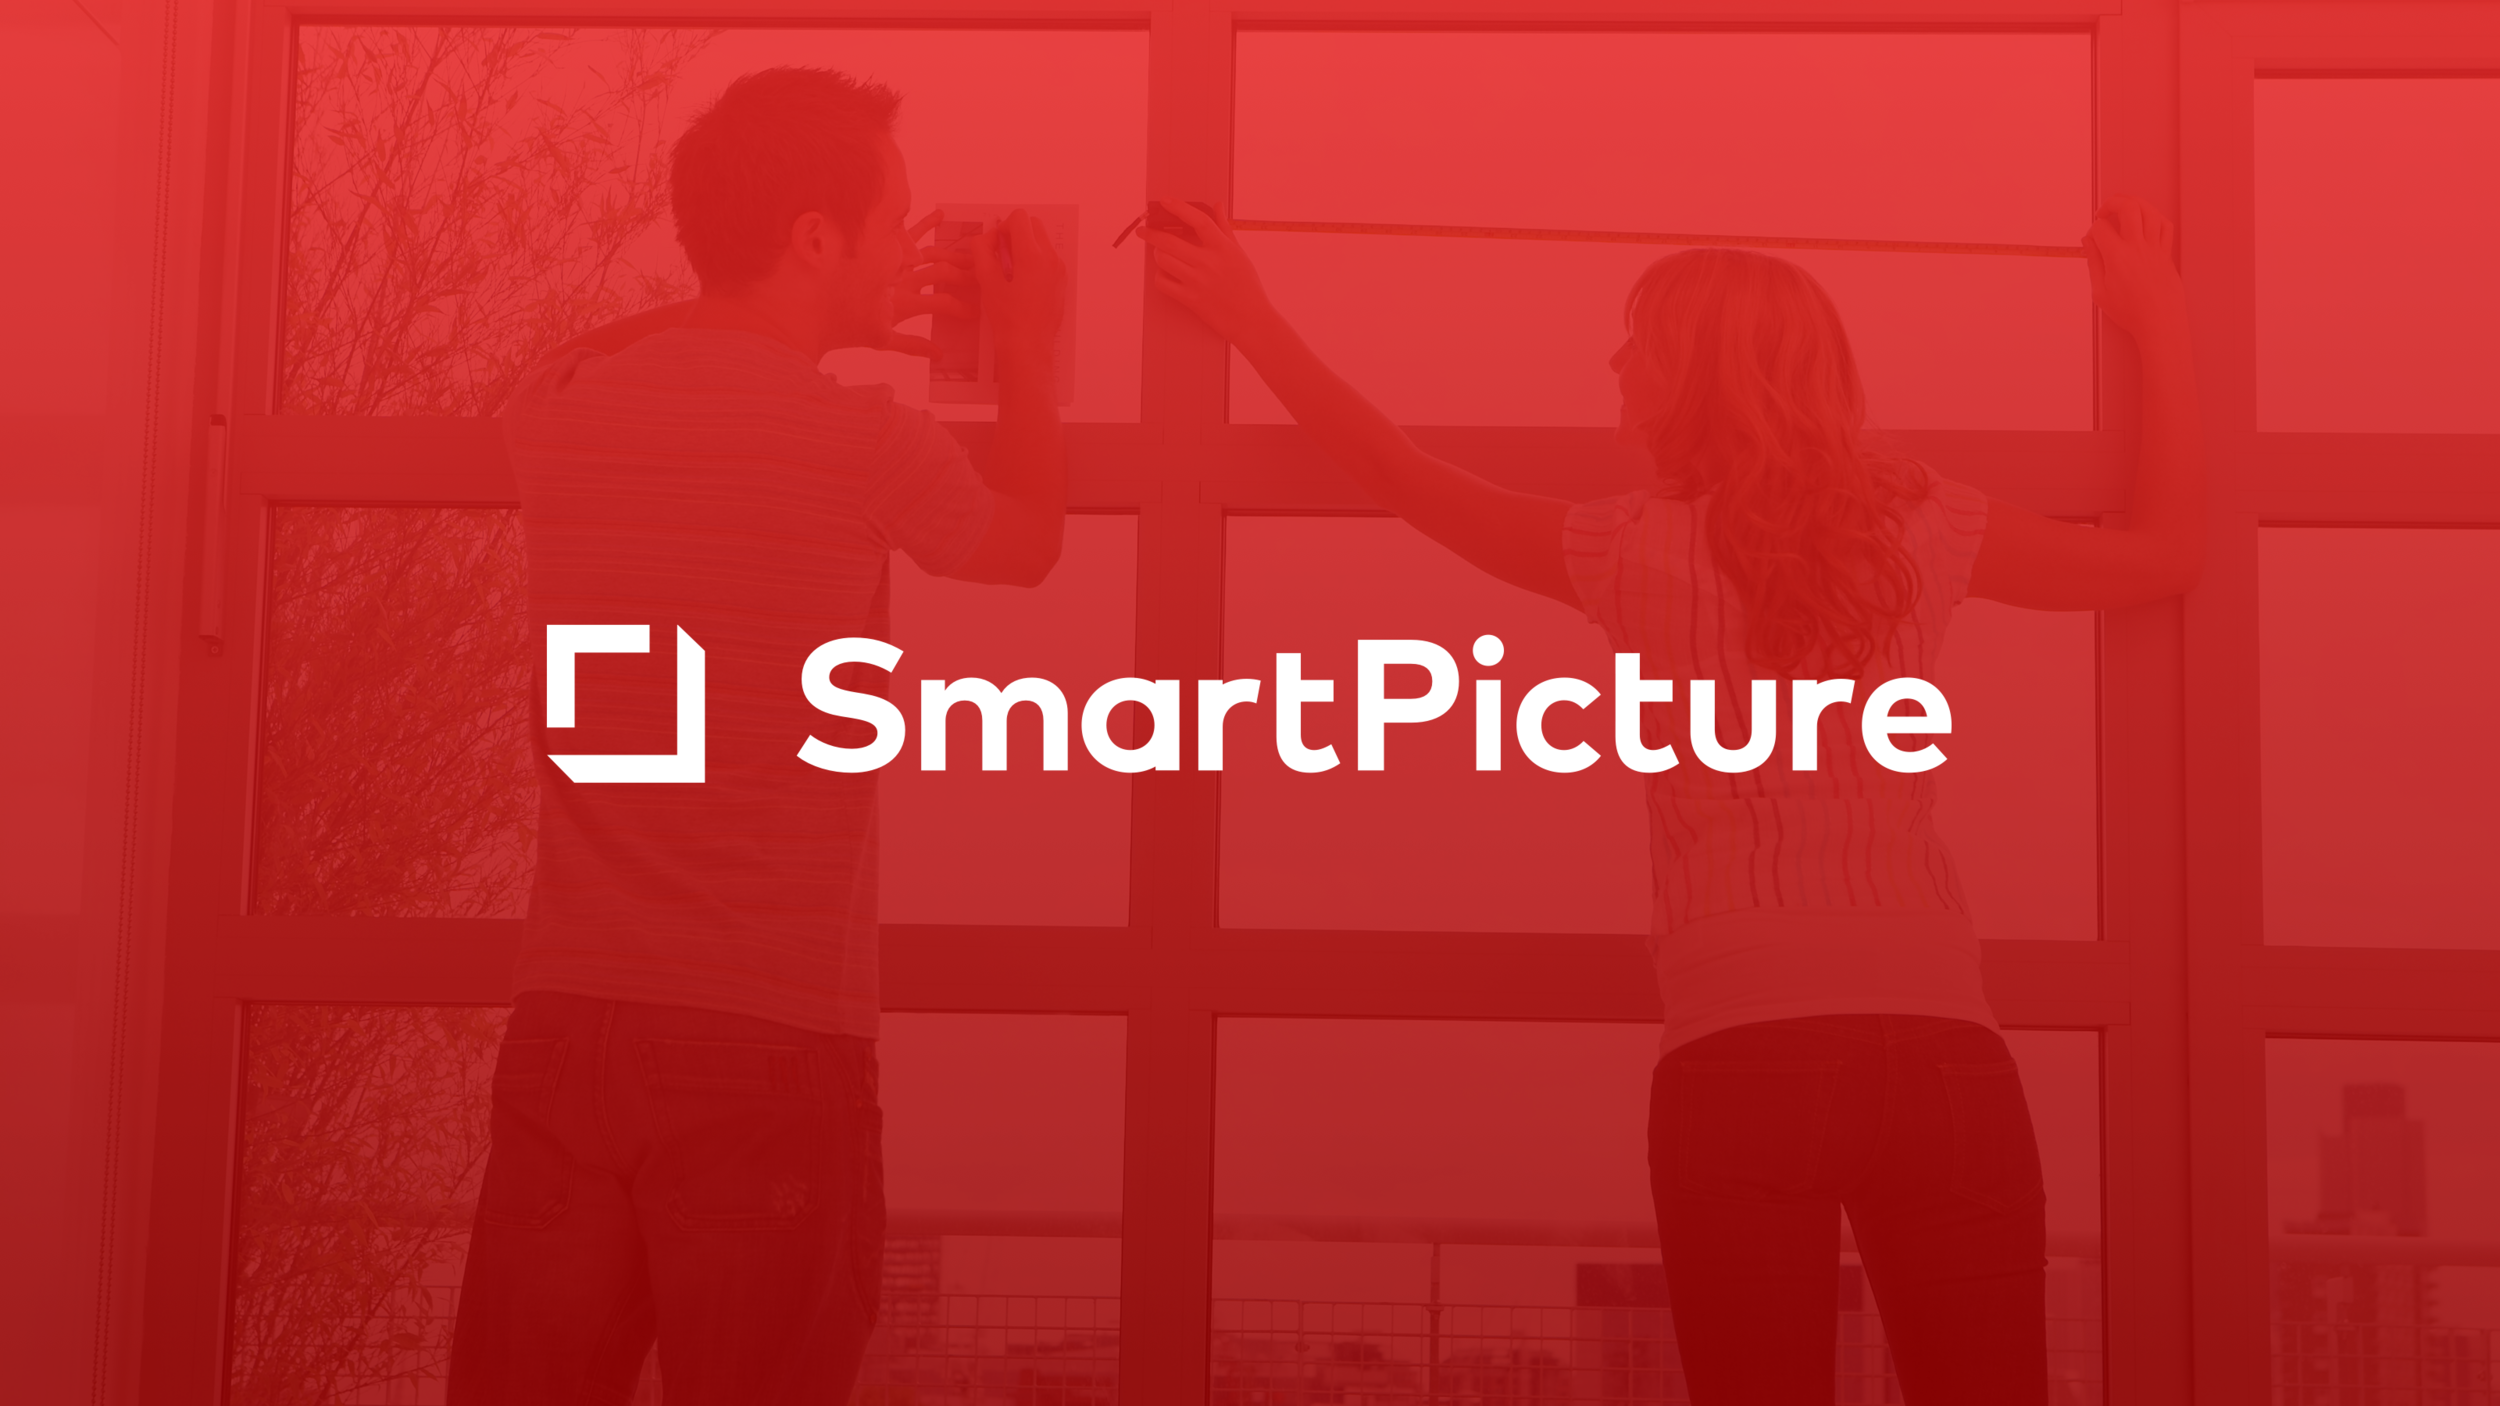 smartpicture_cover@2x.png